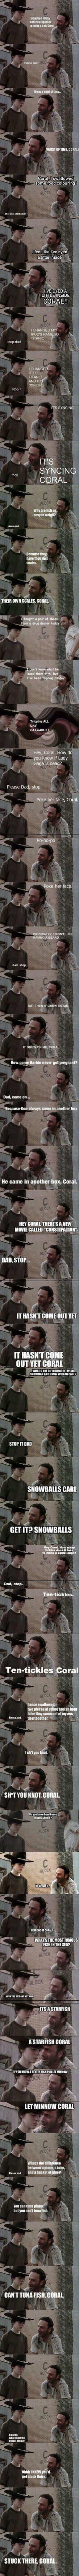 Most Terrible Rick Grimes Dad Jokes Ever funny memes tv meme tv shows funny pictures the walking dead humot funny images walking dead